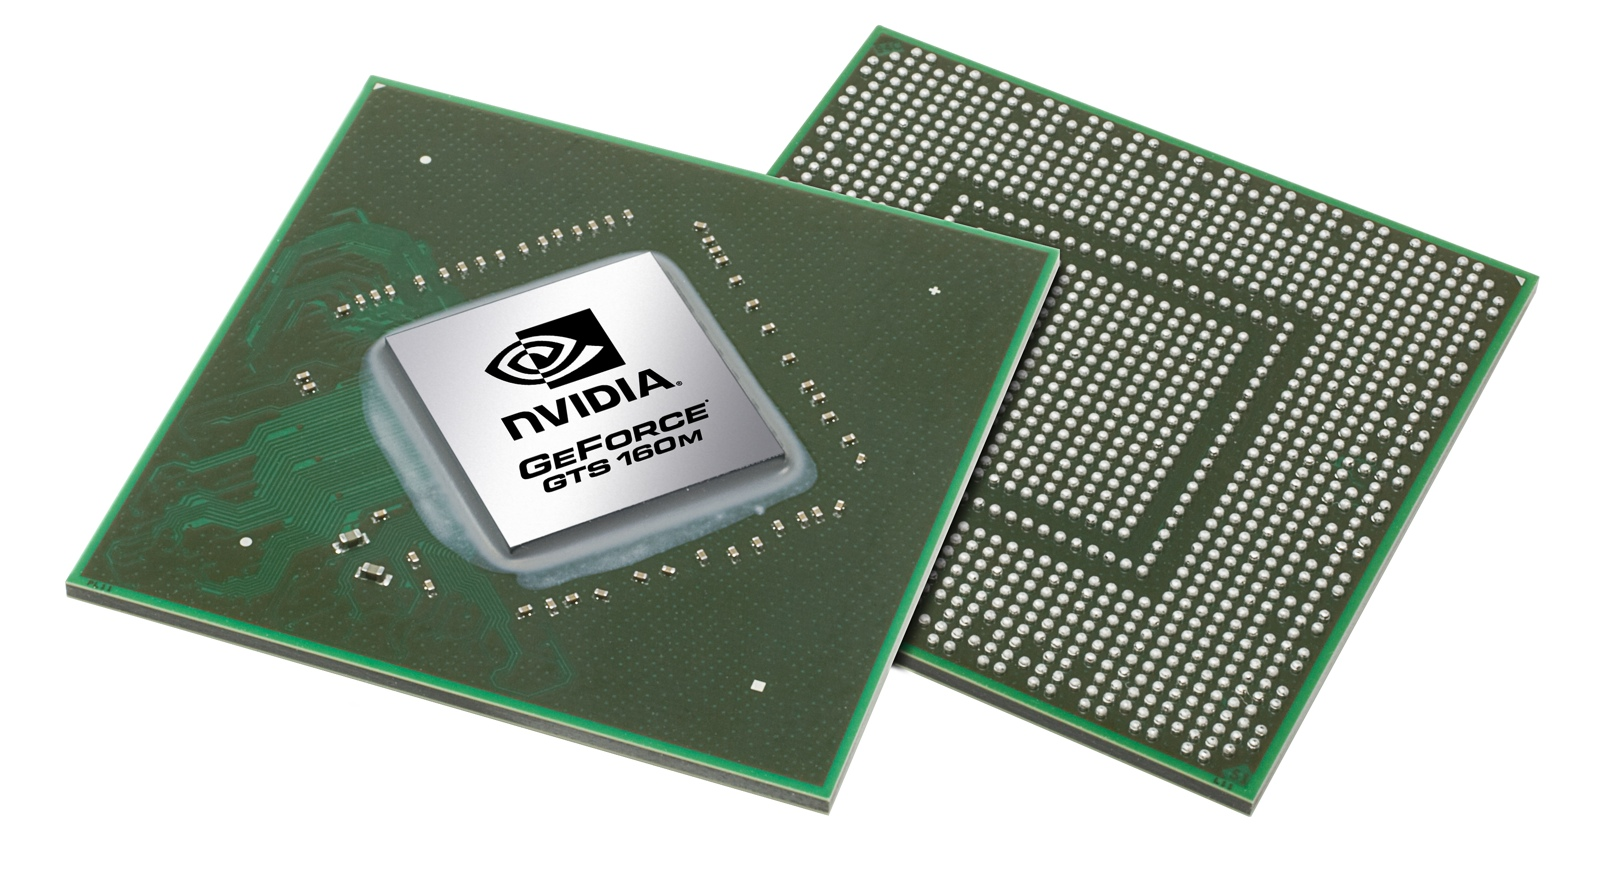 DRIVER FOR NVIDIA GEFORCE GTS 160M